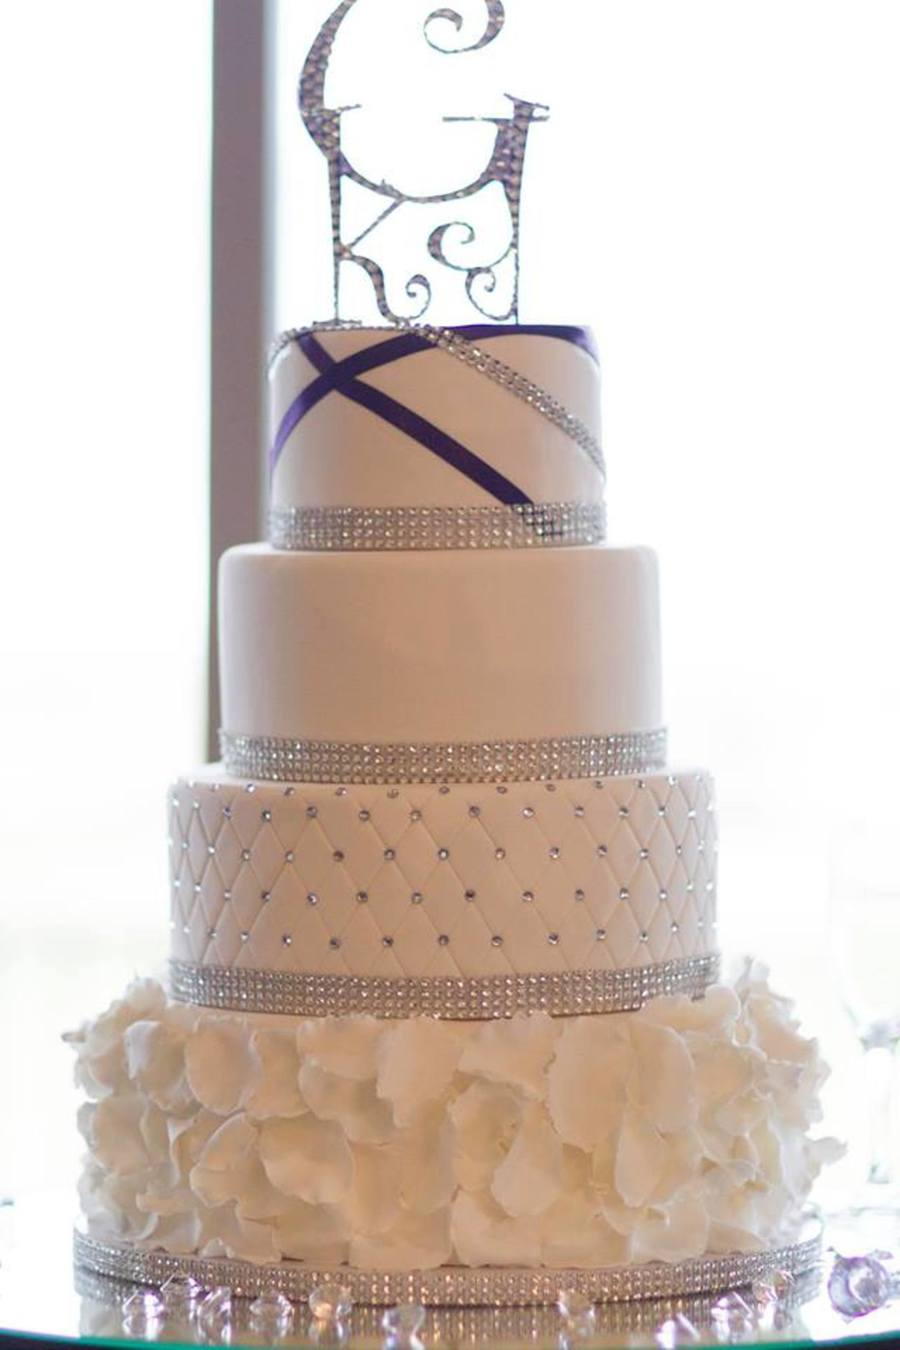 Blinged Out Wedding Cake - CakeCentral.com